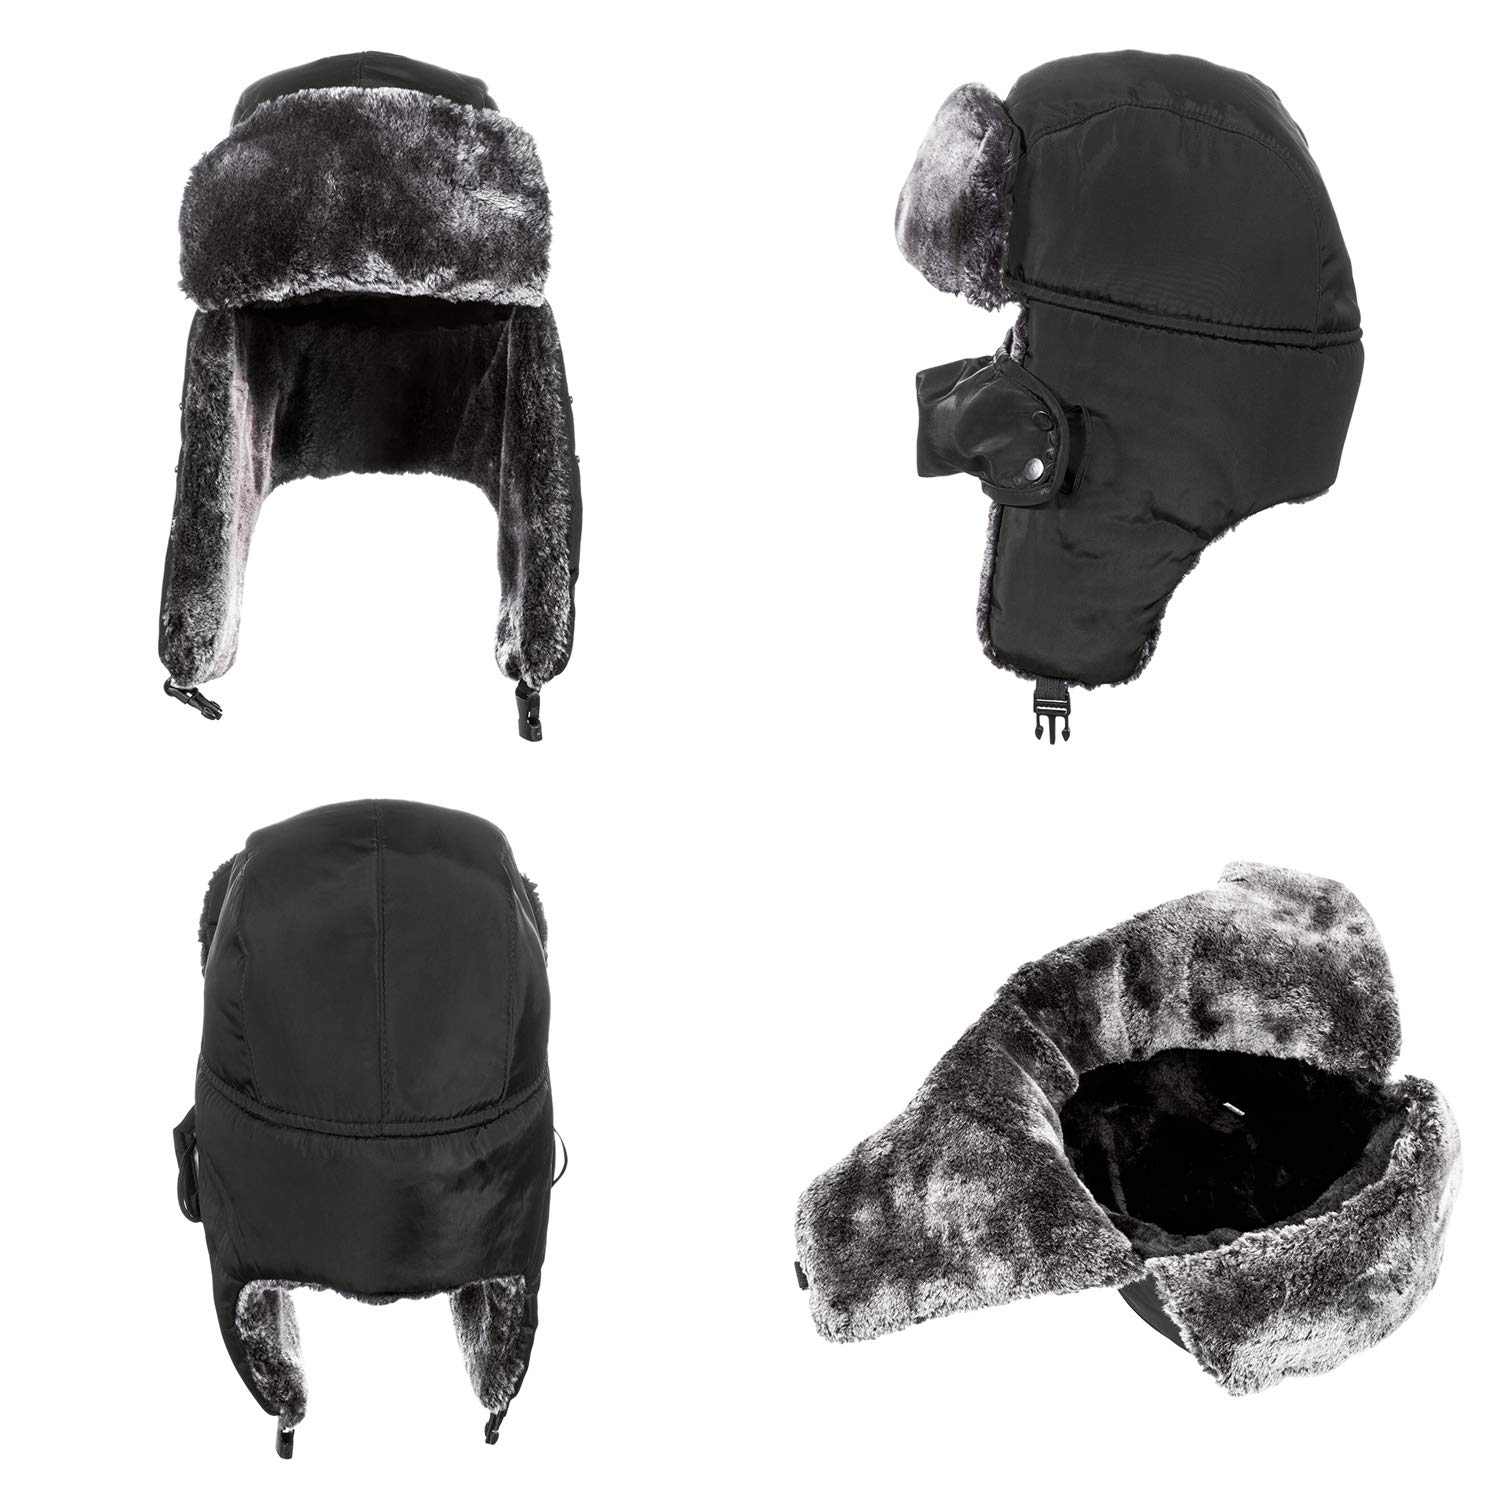 b6eee605465 DYAPP Men s Women s Windproof Ski Trapper Hat with Ear Flaps and Mask Warm  Trooper Hunting Hats